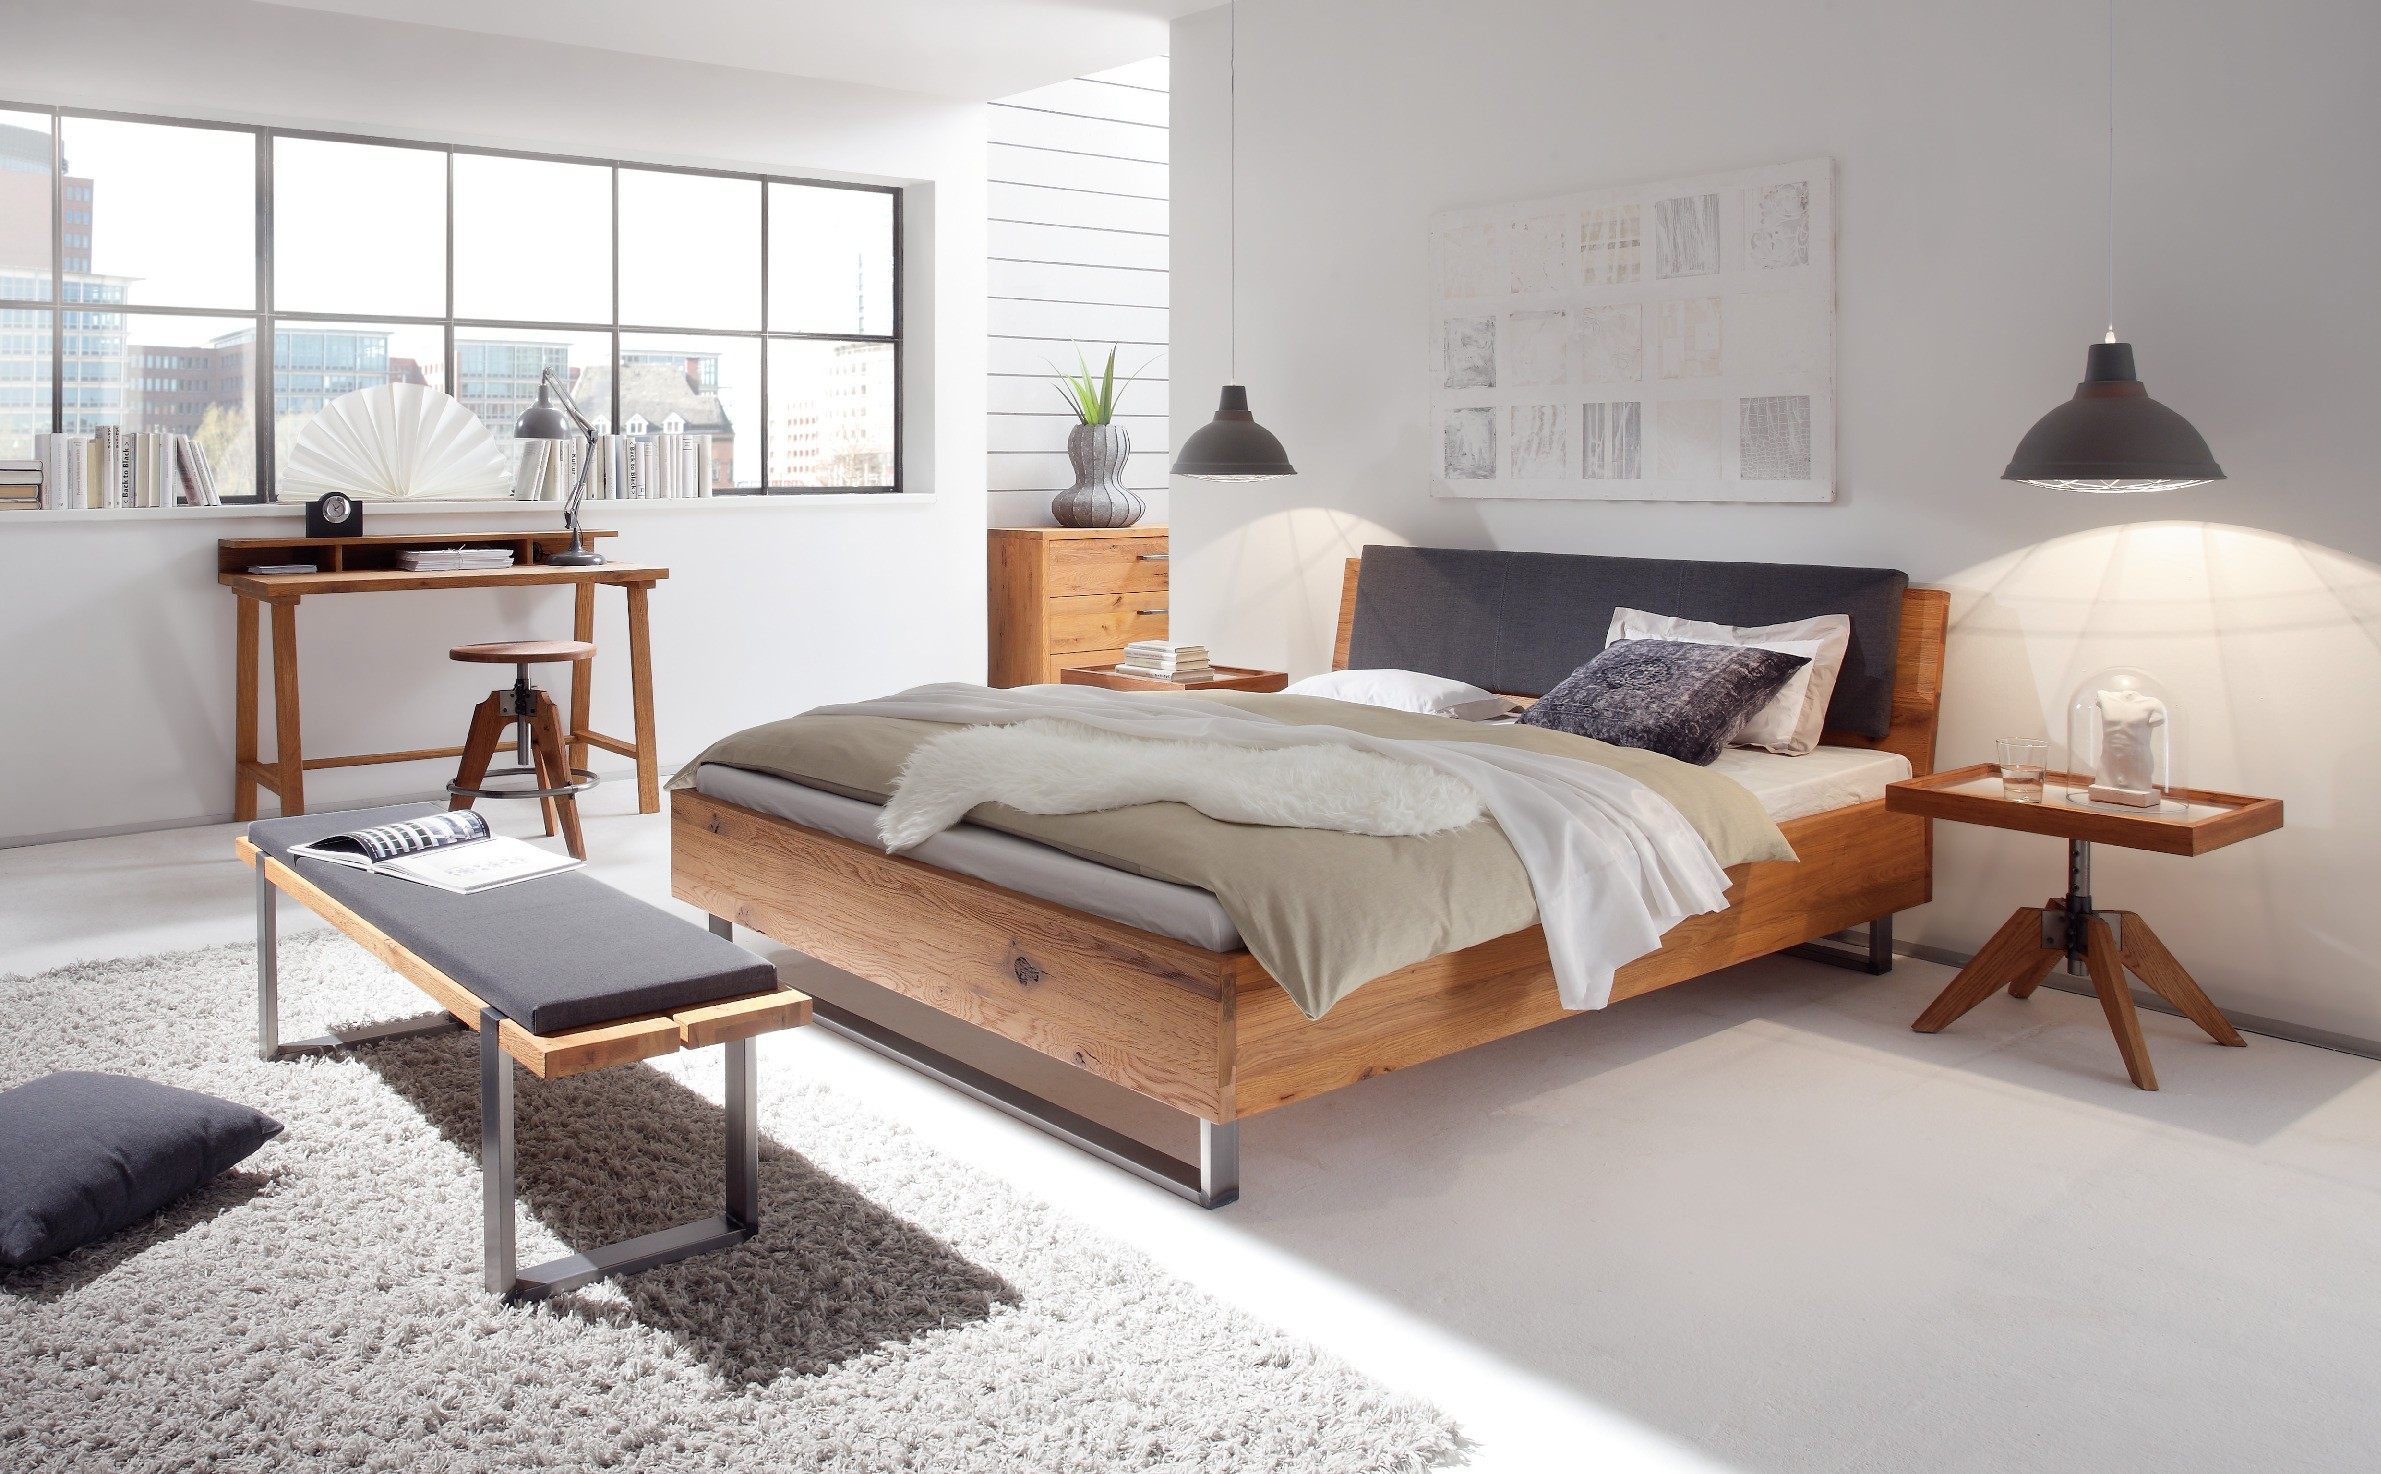 akzentmoebel unger shop bett hasena oak line wild cadro 23. Black Bedroom Furniture Sets. Home Design Ideas